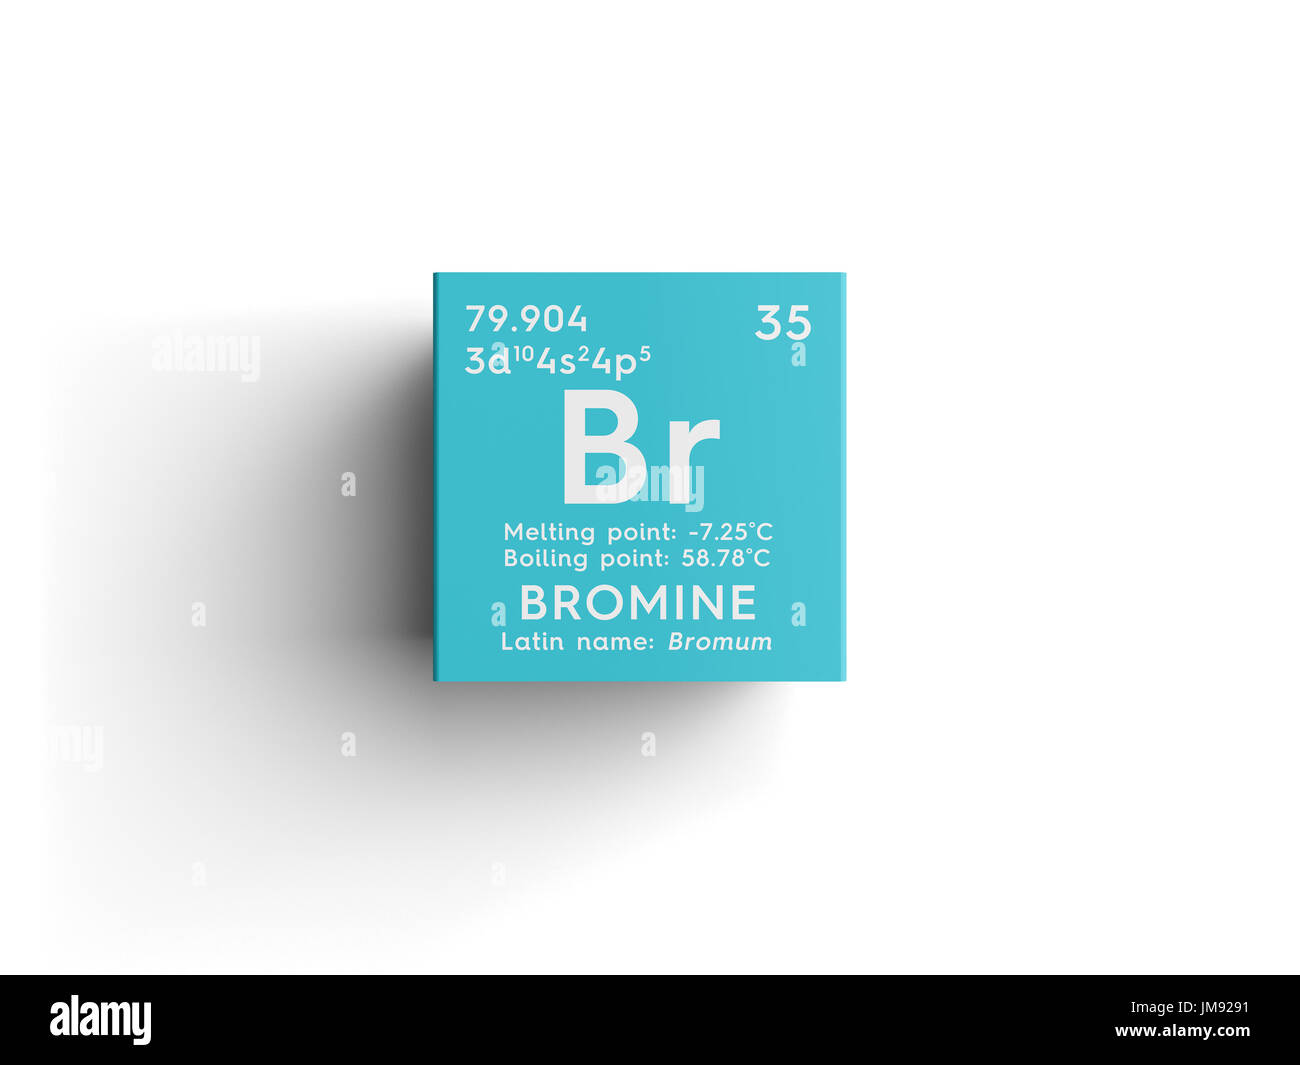 Bromine chemical element stock photos bromine chemical element bromine bromum halogens chemical element of mendeleevs periodic table bromine in square gamestrikefo Gallery